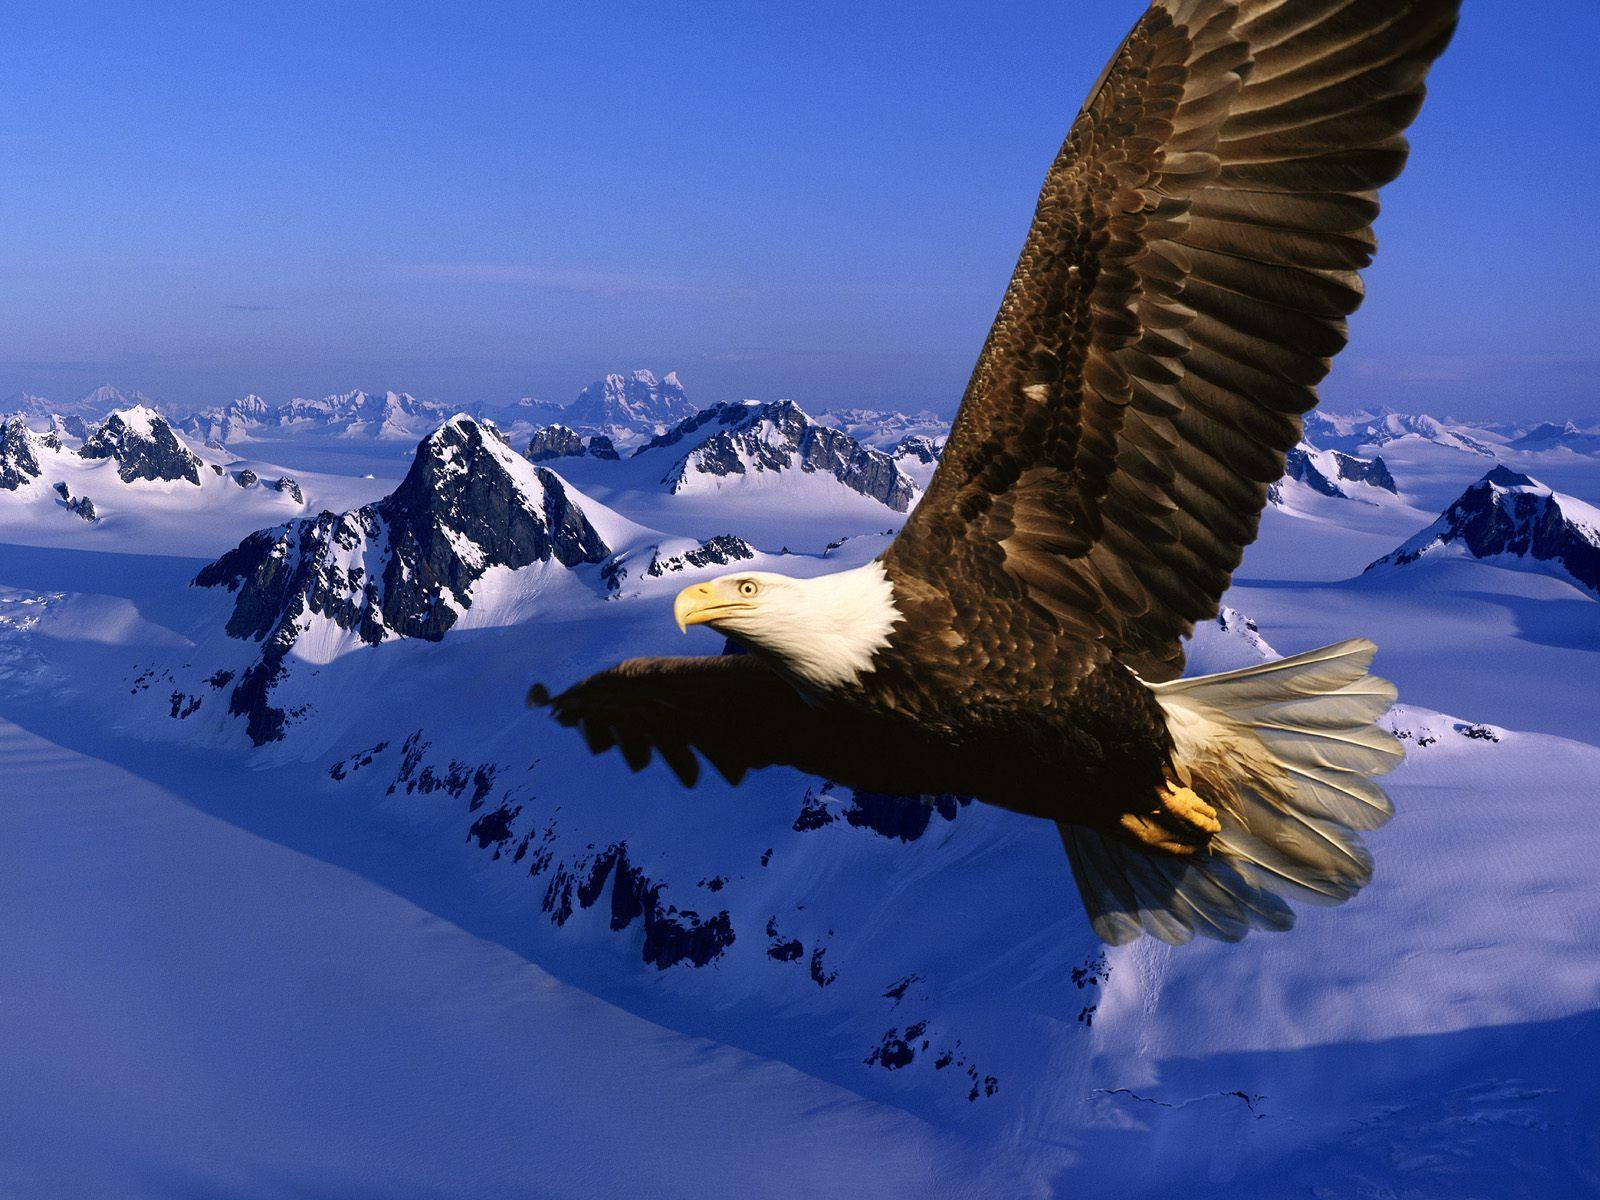 Bird backgrounds with eagles